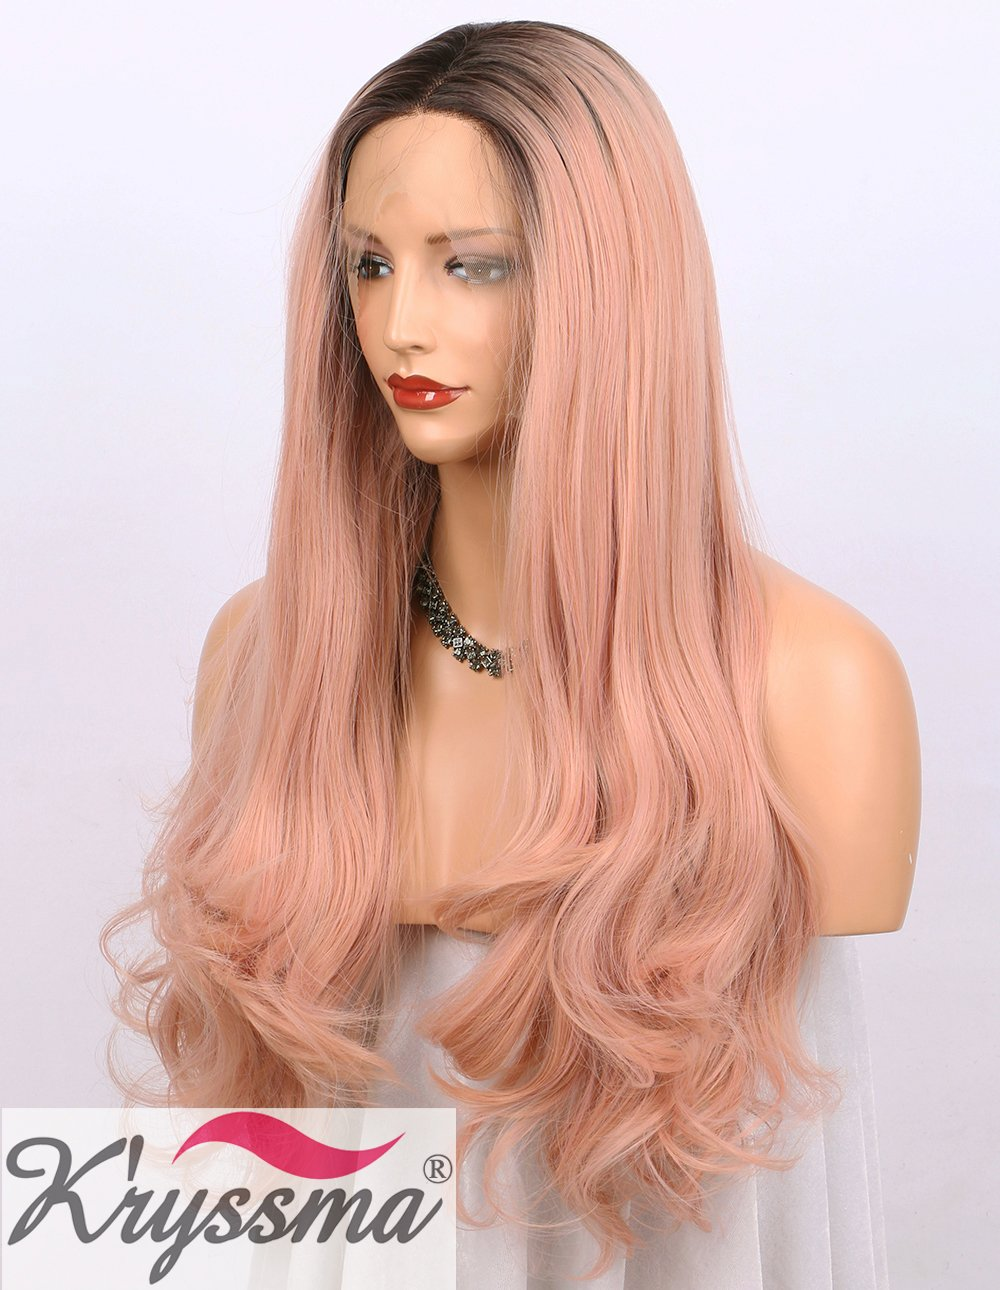 K'ryssma Orange Pink Lace Front Wig Ombre Dark Brown to Rose Pink Synthetic Wigs Long Wavy Wig for Women 22 inch K' ryssma